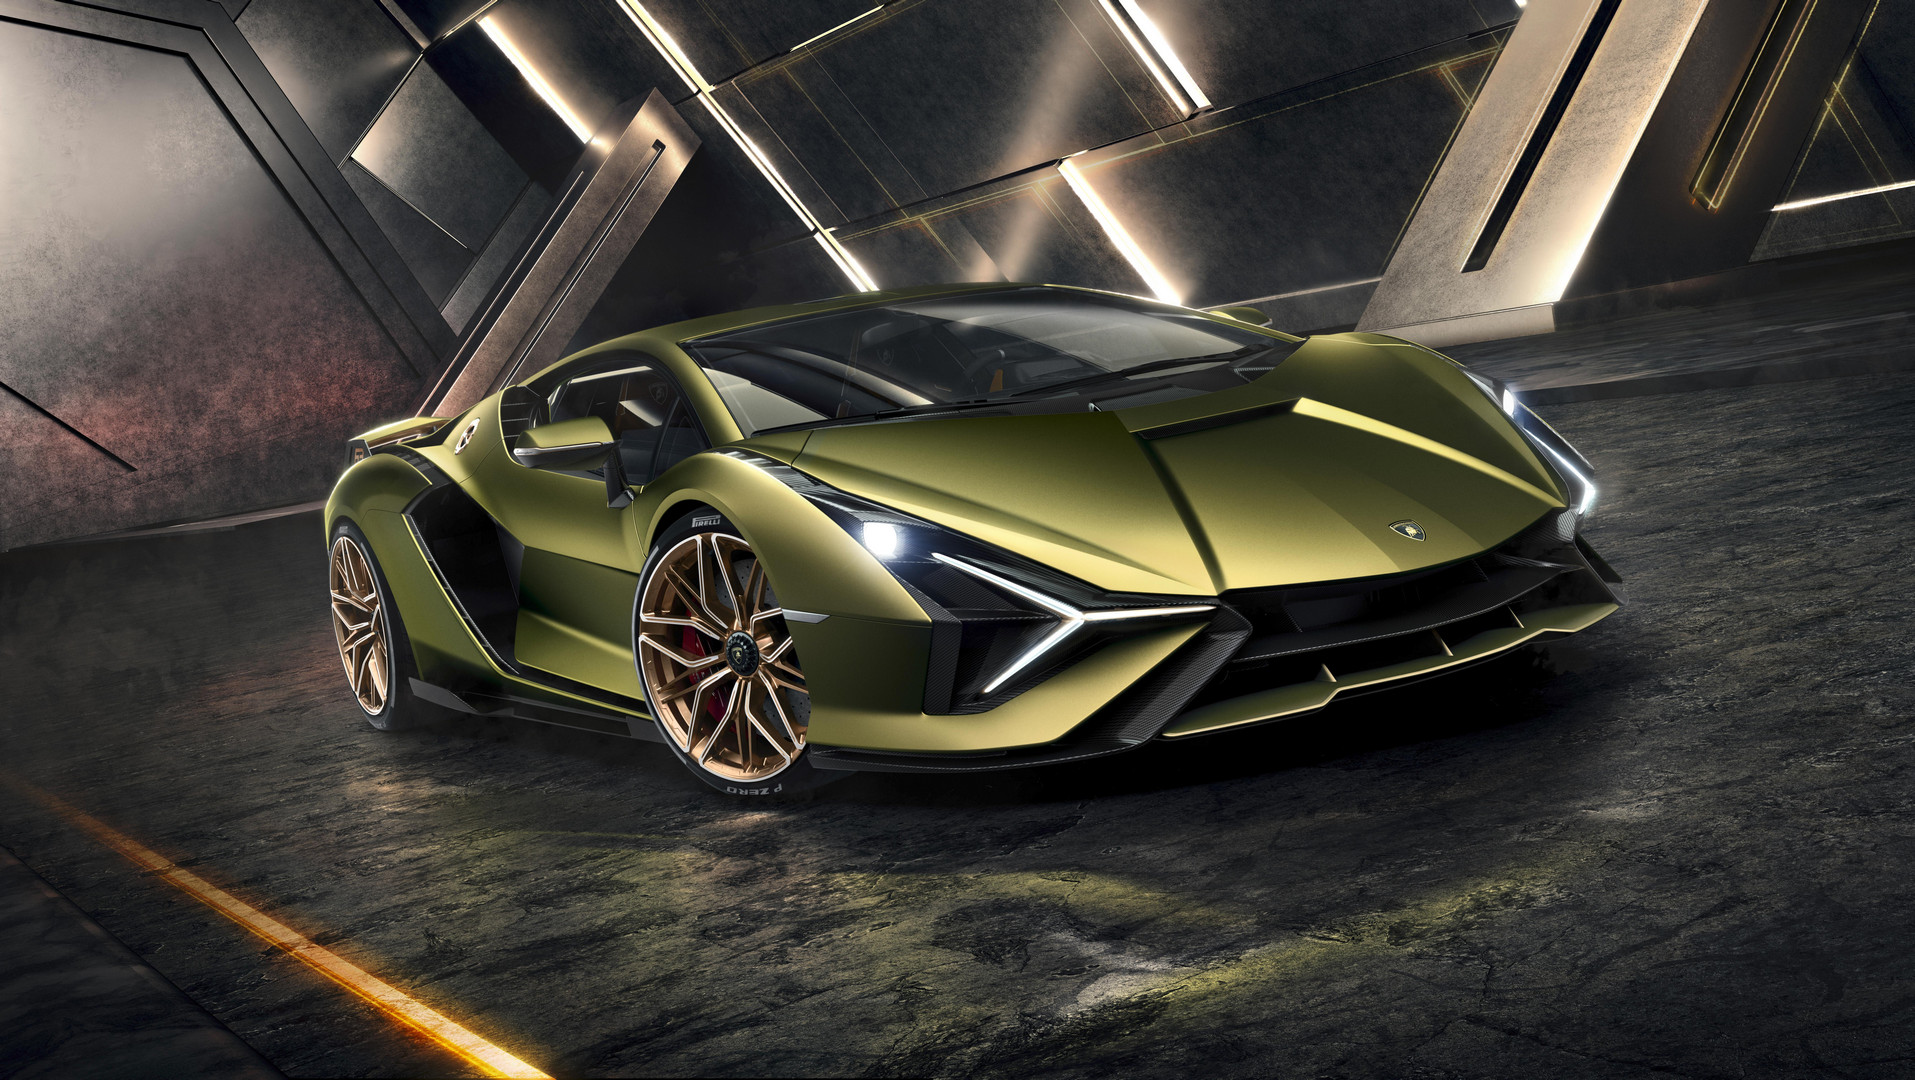 Lamborghini Sian Wallpaper